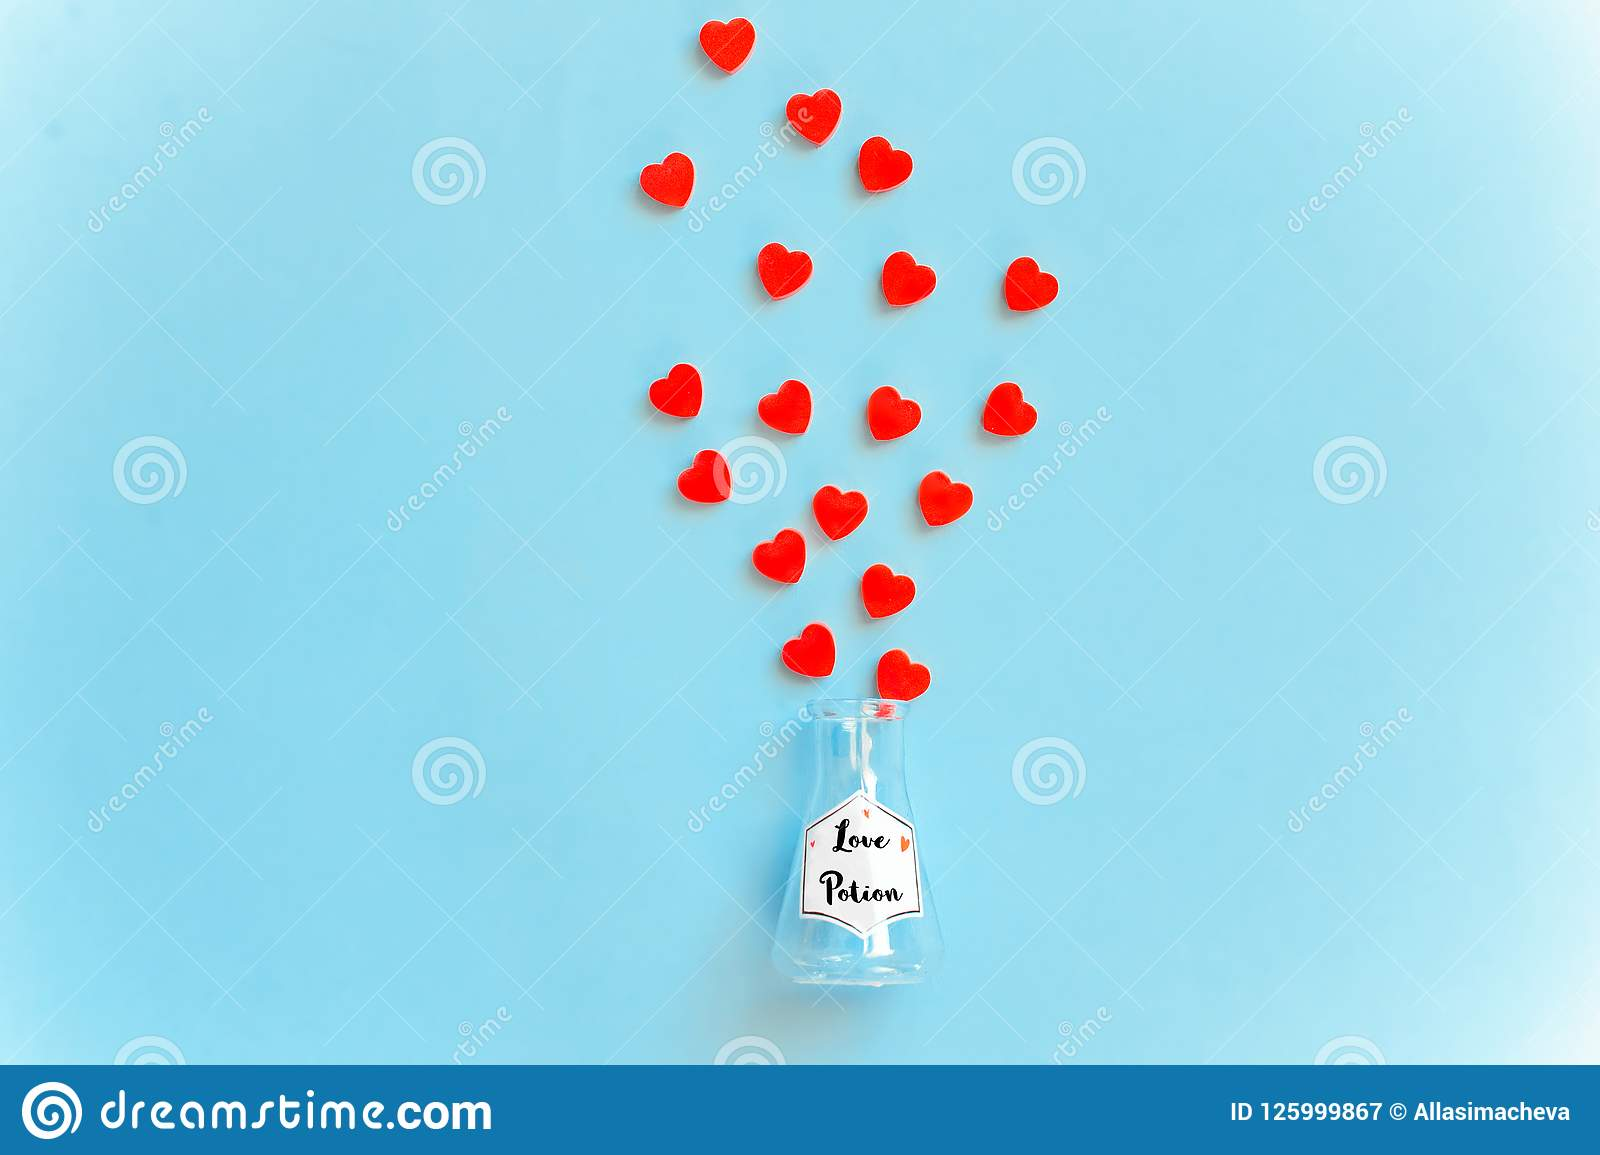 Love potion bottle, concept for dating, romance and valentine`s day